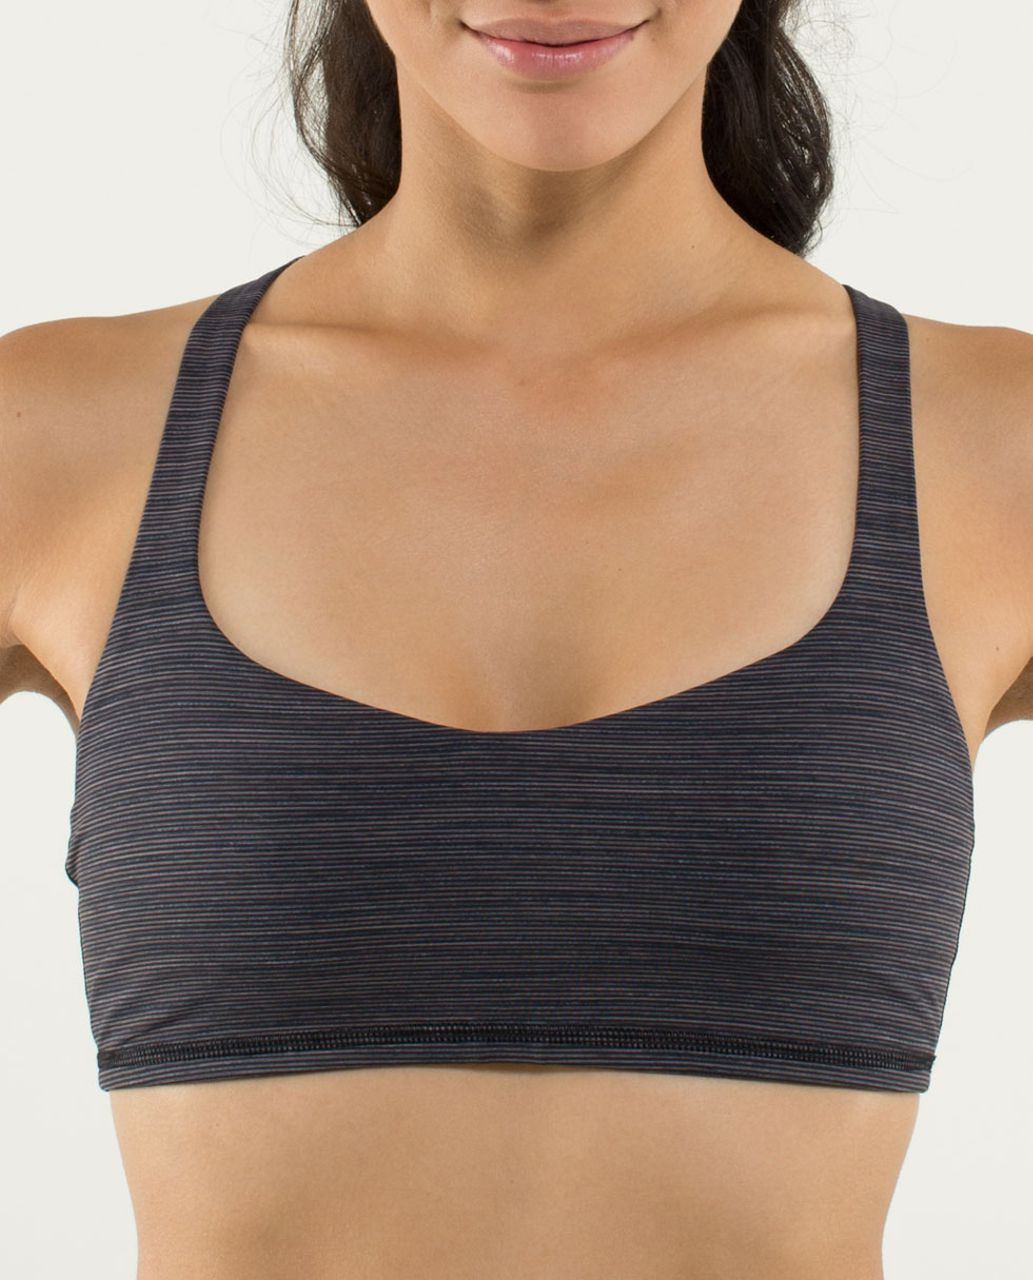 Lululemon Free To Be Bra - Wee Are From Space September Black